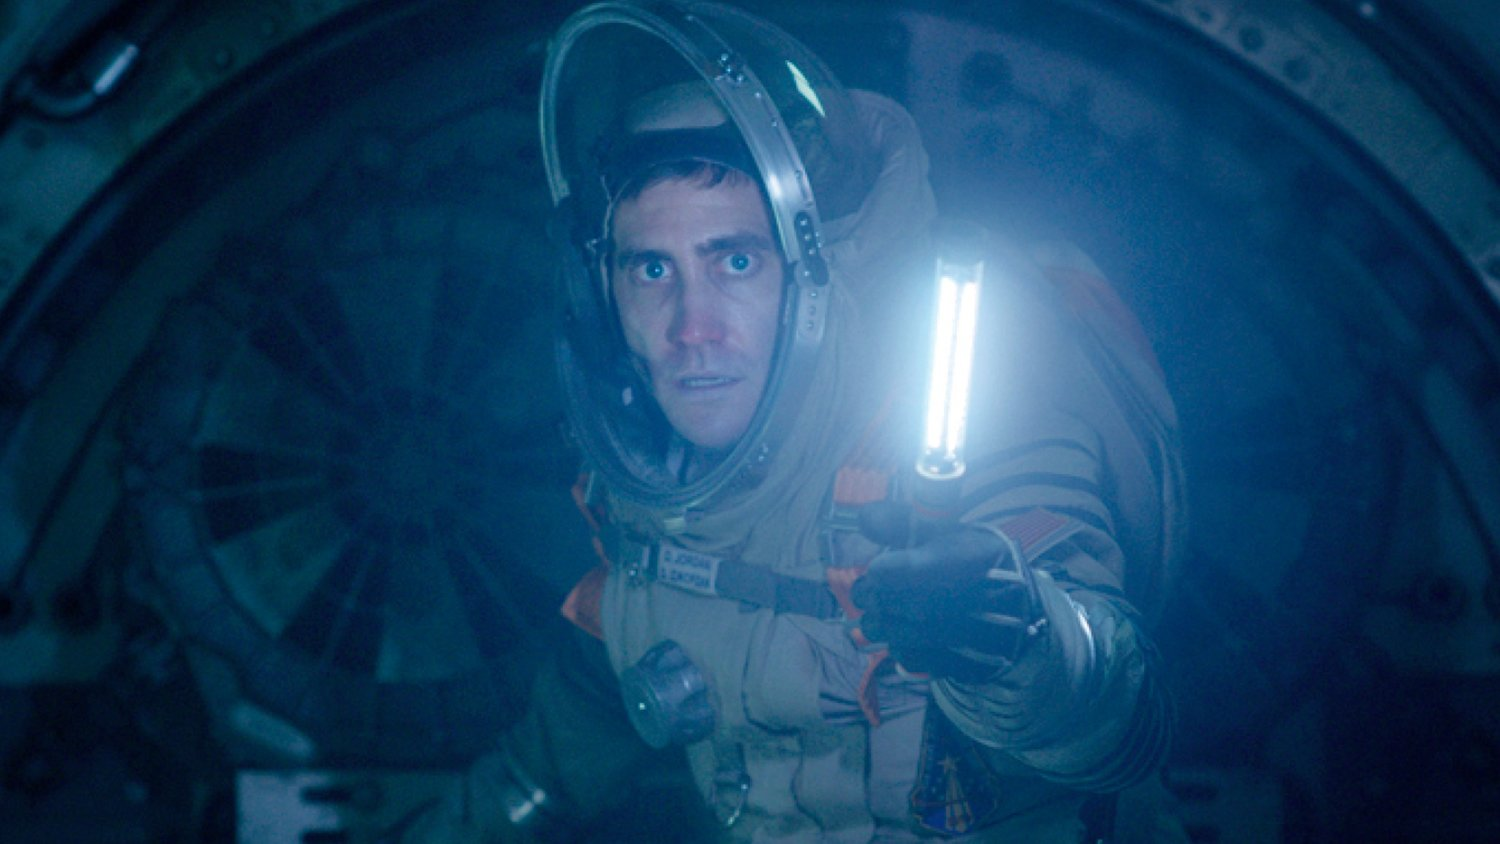 Review: LIFE Is a Captivating, Terrifying, and Entertaining Sci-Fi Film